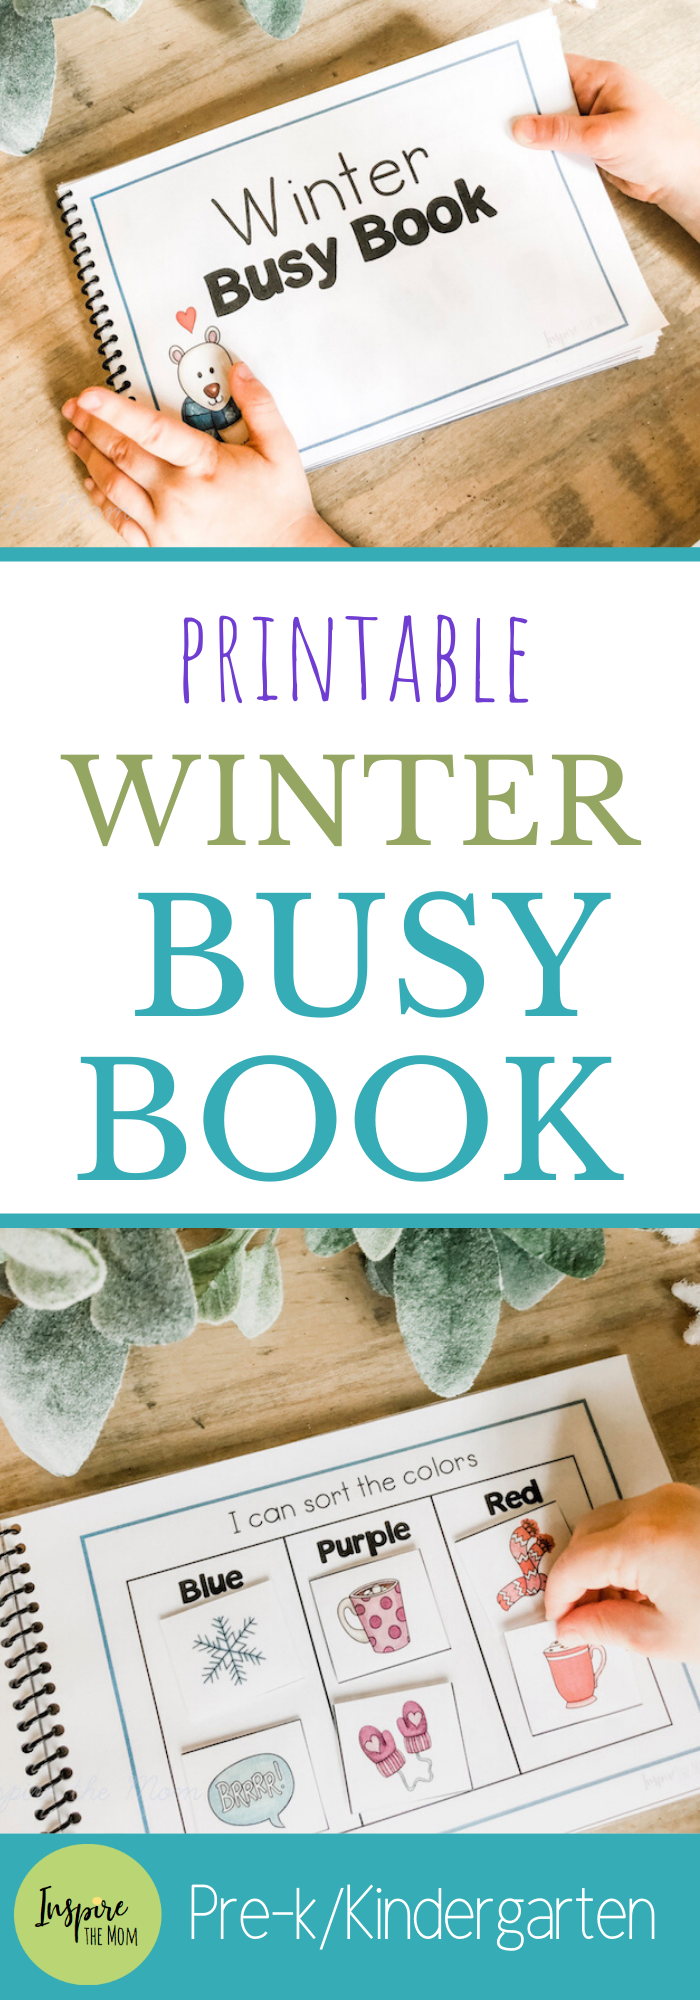 Printable Winter Busy Book - Inspire the Mom Fun, Printable Winter Busy Book for preschool or kinde